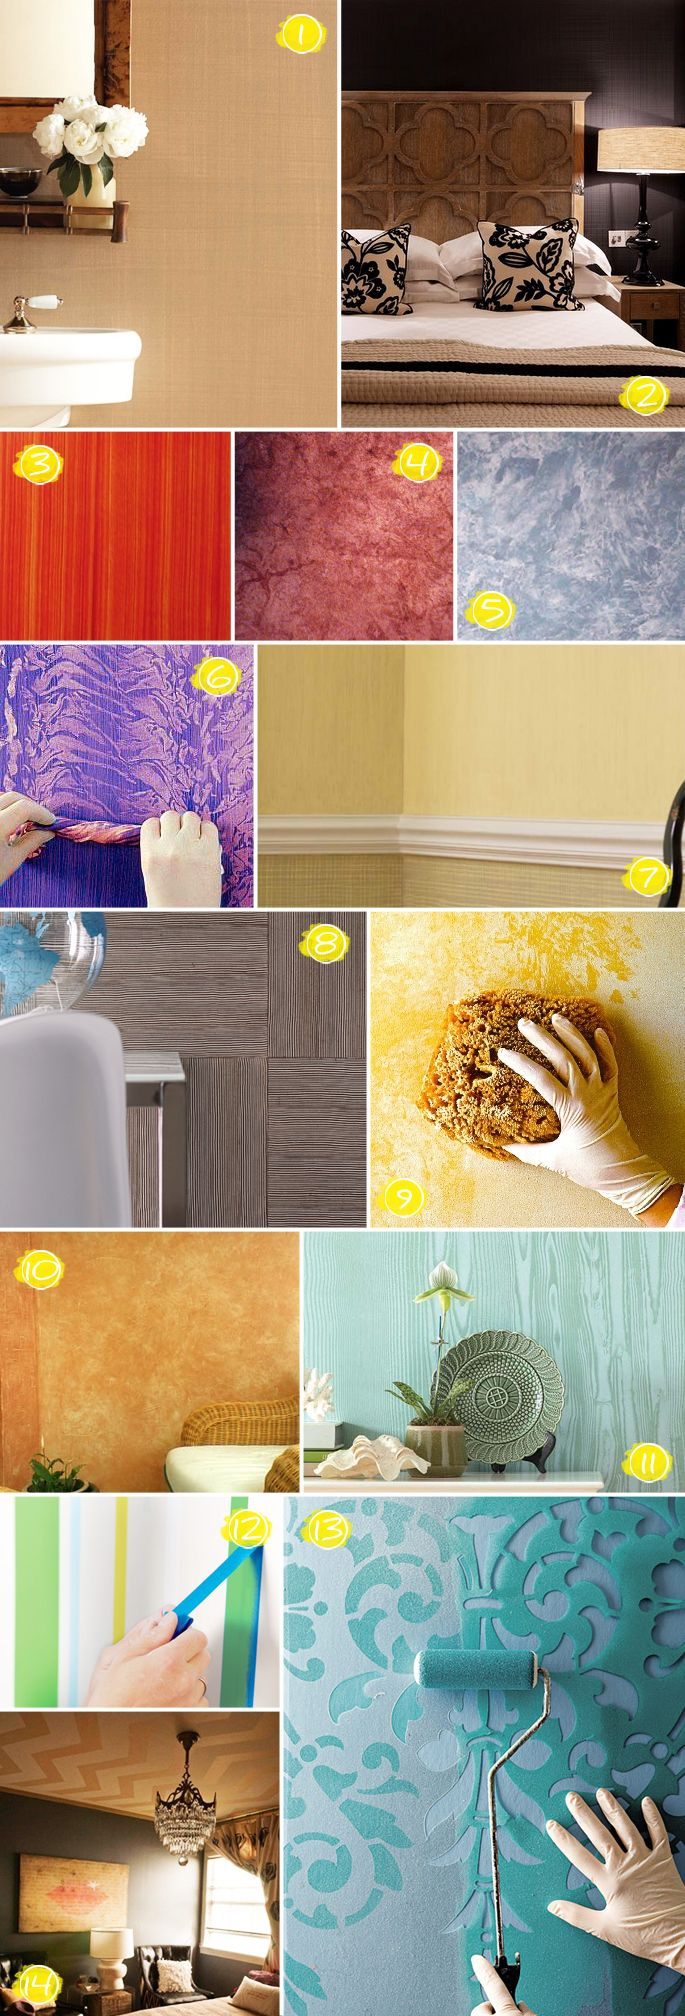 Amazing Textured Wall Painting Ideas: From Faux Wood To Linen Effects throughout Diy Wall Painting Ideas